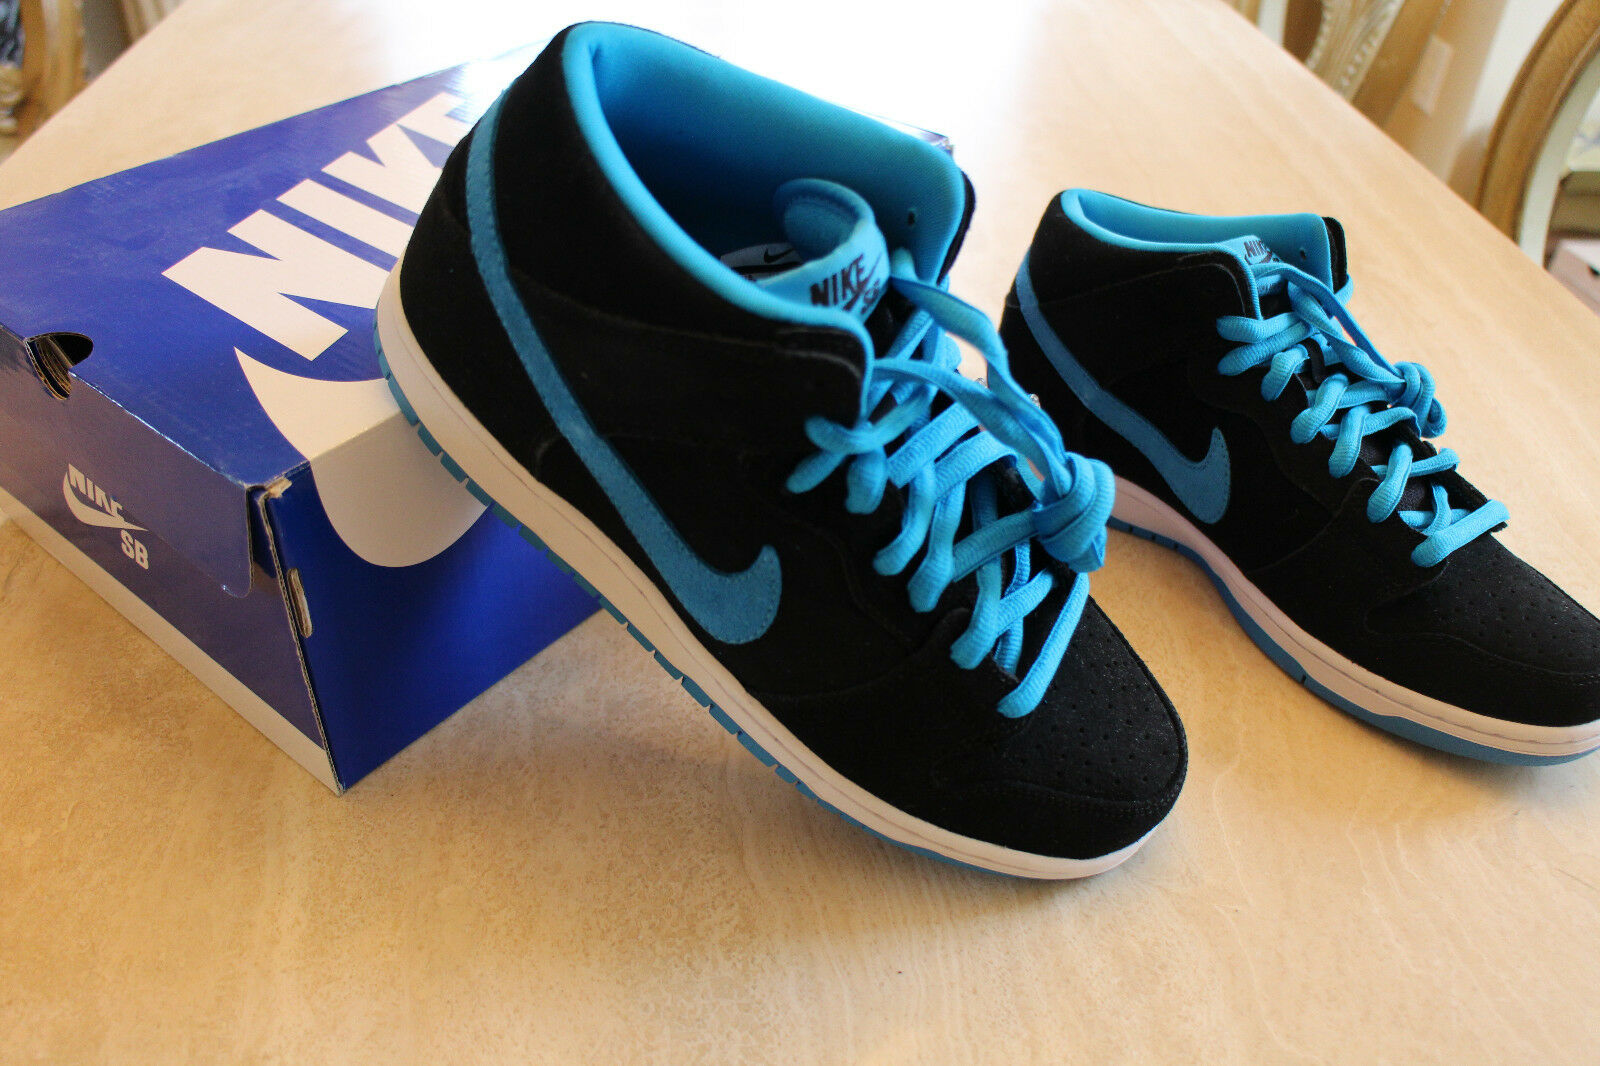 NIKE DUNK MID PRO SB NIB Sz 8.5 Price reduction AUTHENTIC!! best-selling model of the brand